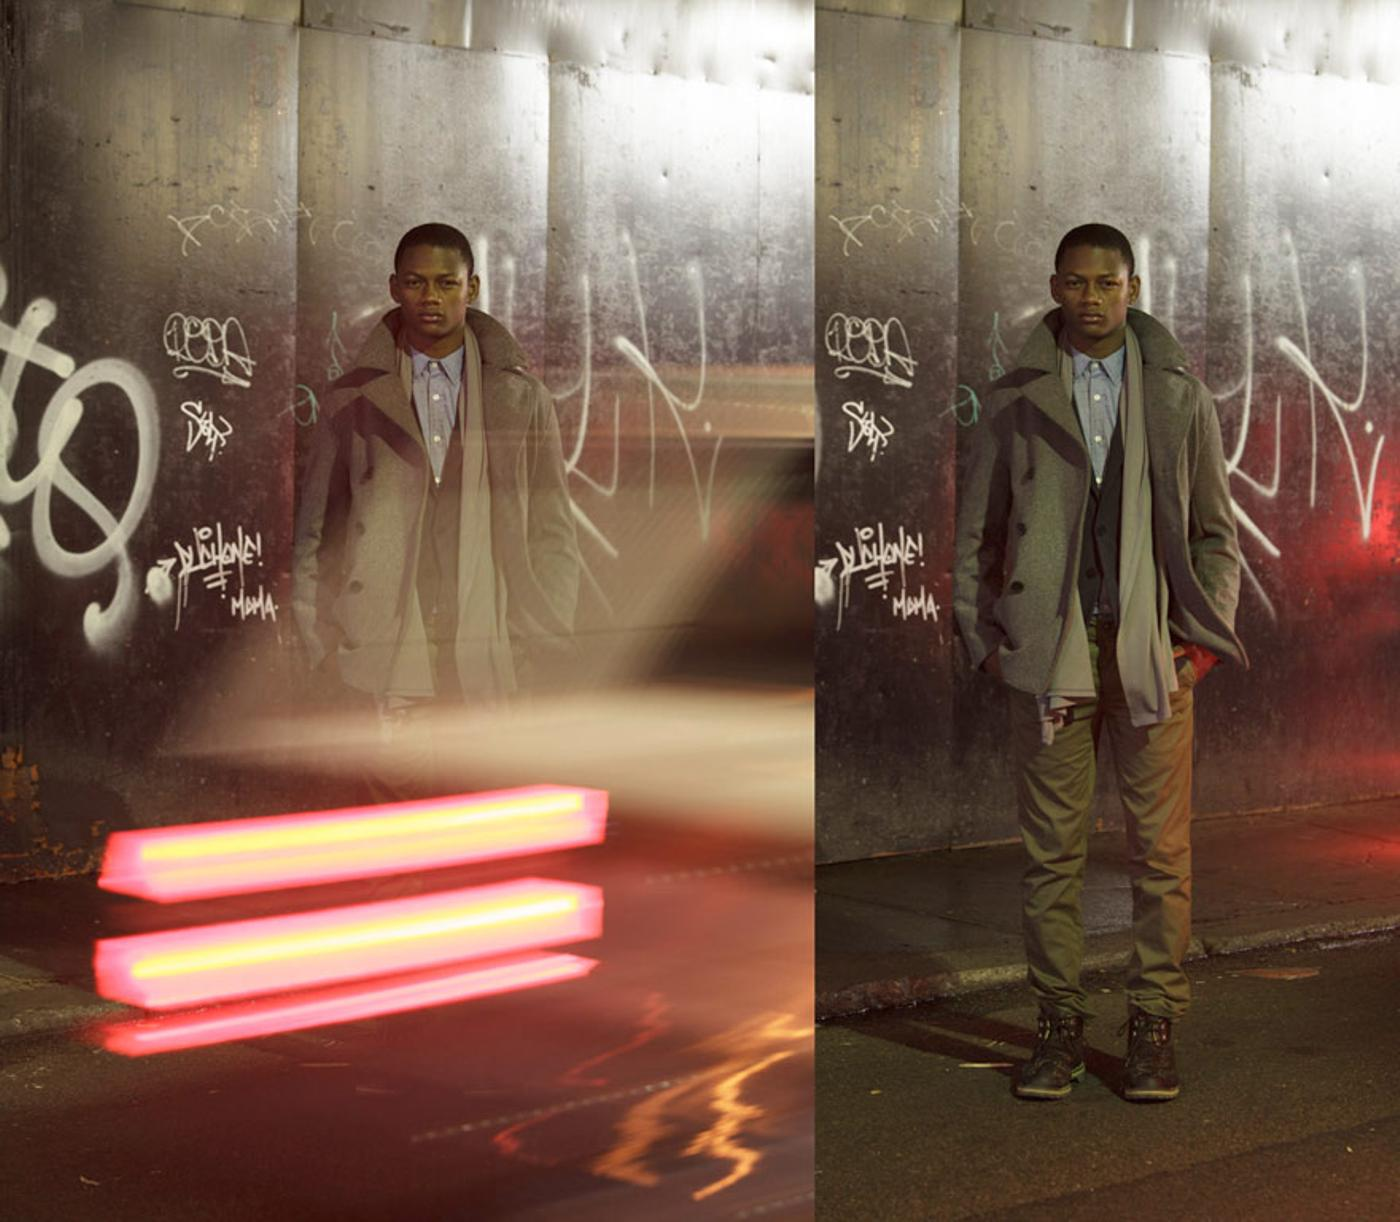 Outlier Fall 2012: Layers, Movement and Light